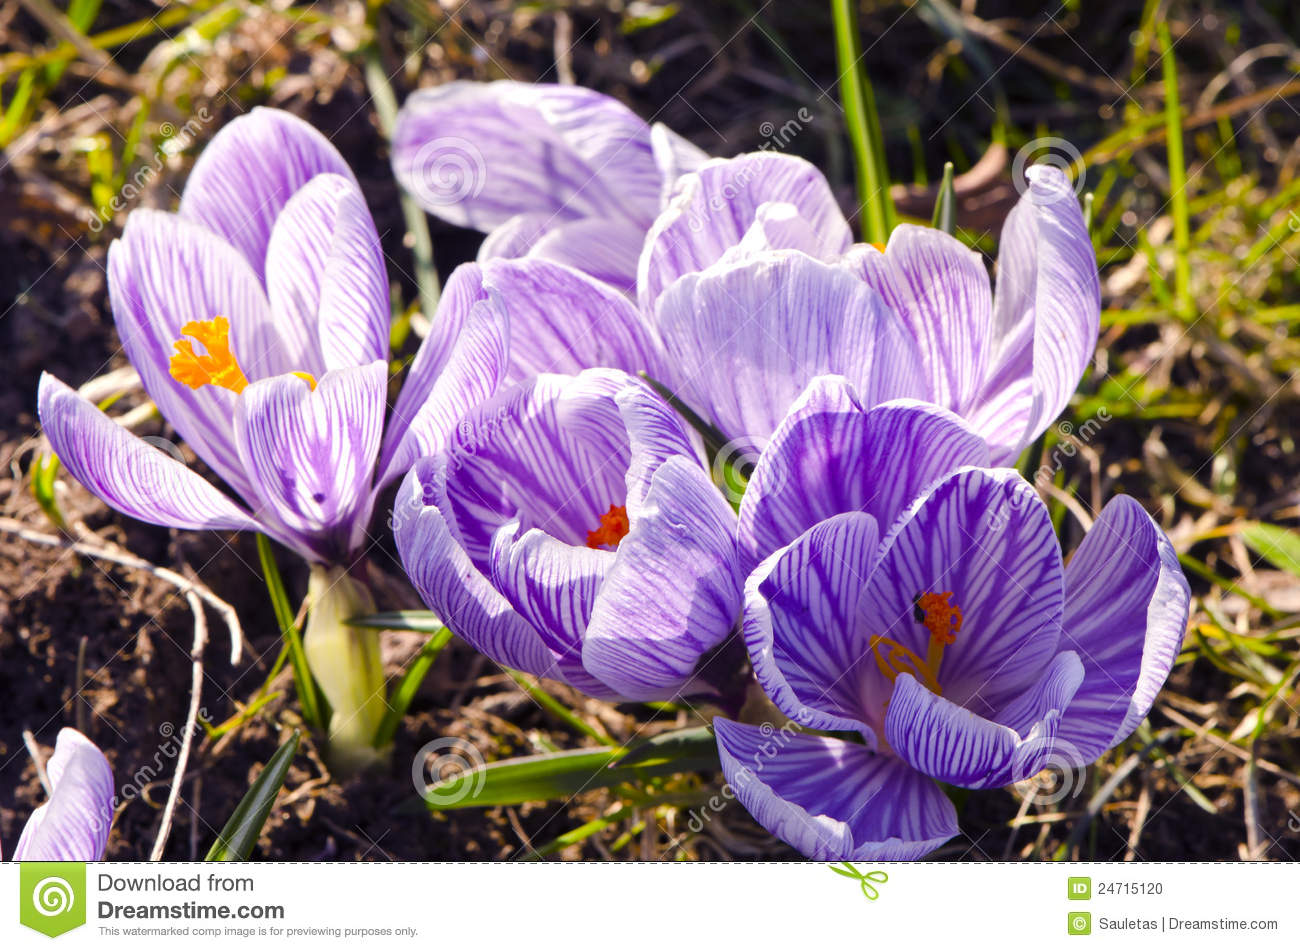 Crocus saffron first spring flower grow in garden stock photo download crocus saffron first spring flower grow in garden stock photo image of grow mightylinksfo